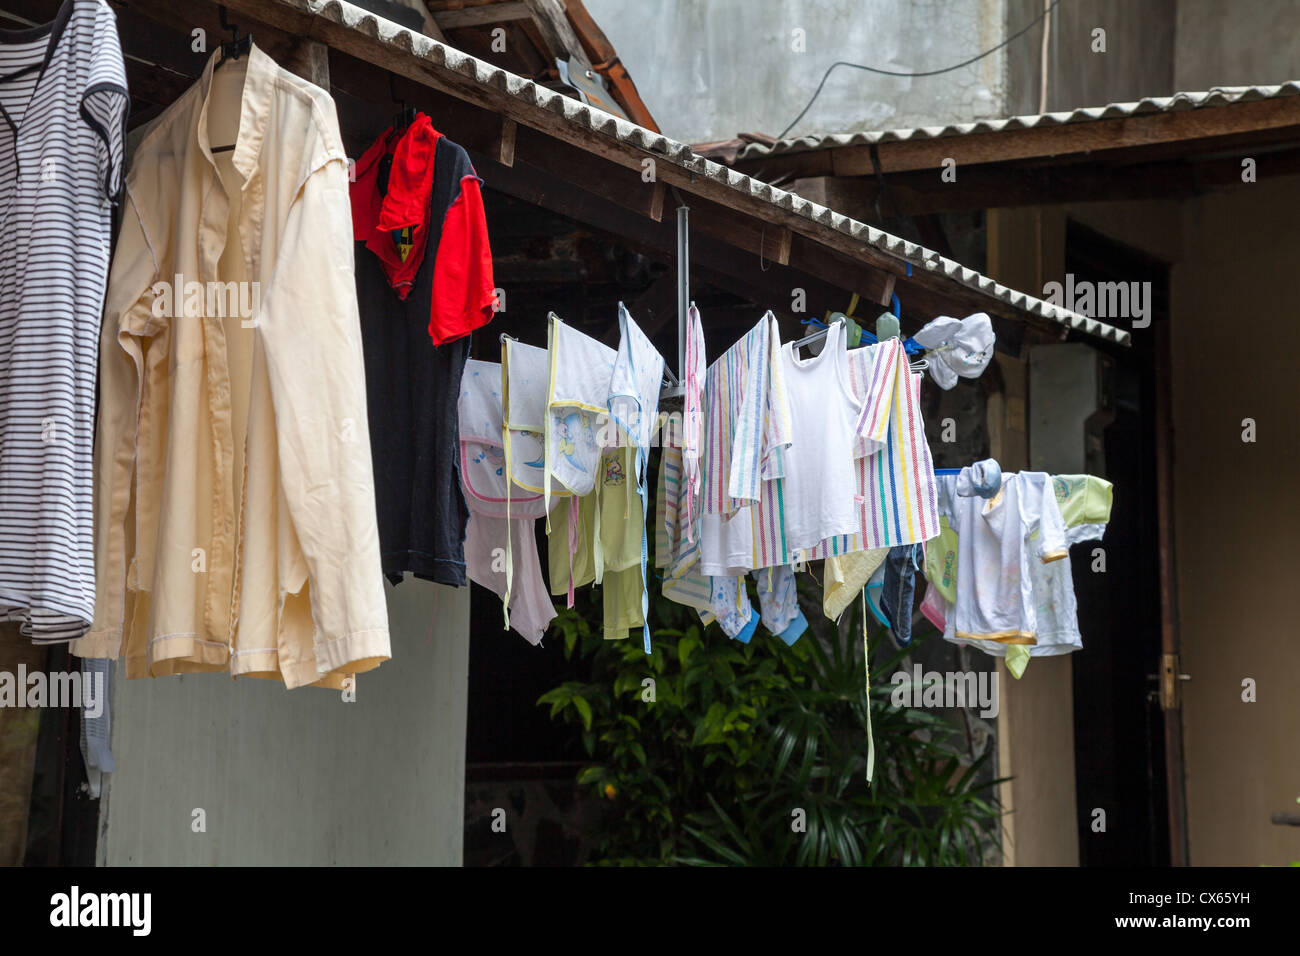 Drying the Laundry in the Old Town of Yogyakarta in Indonesia - Stock Image